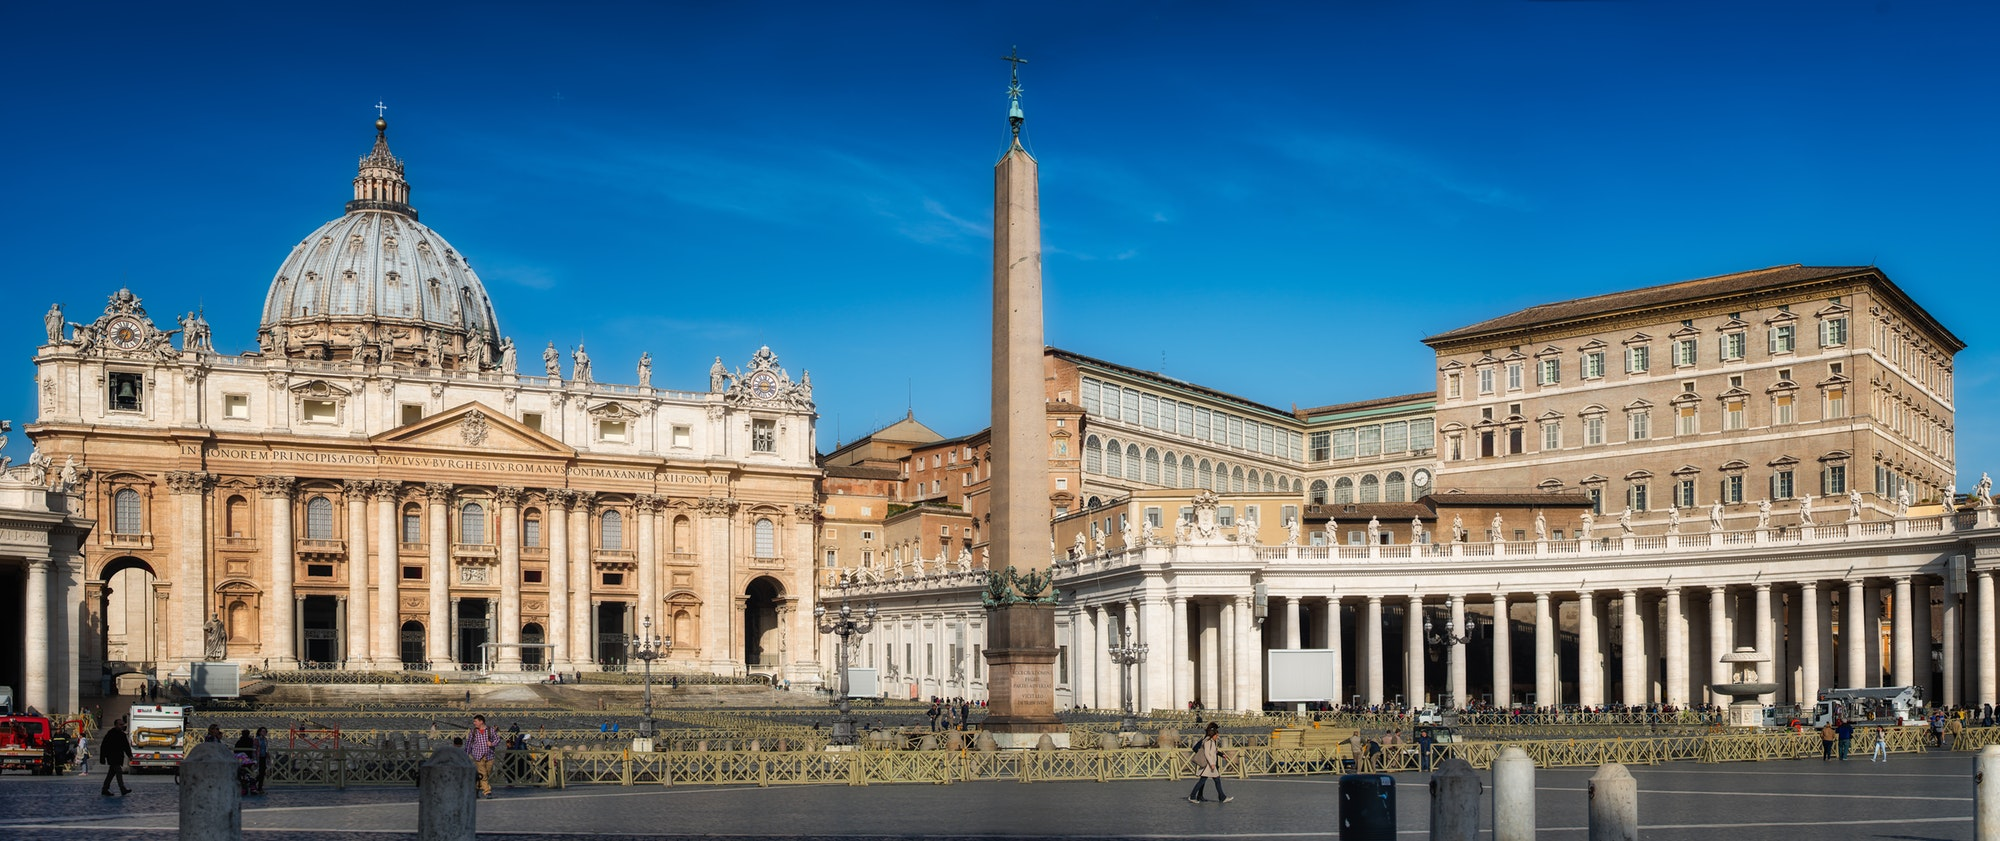 Rome,Iitaly-march 24,2015: Panorama of St. Peter's Square in Rom